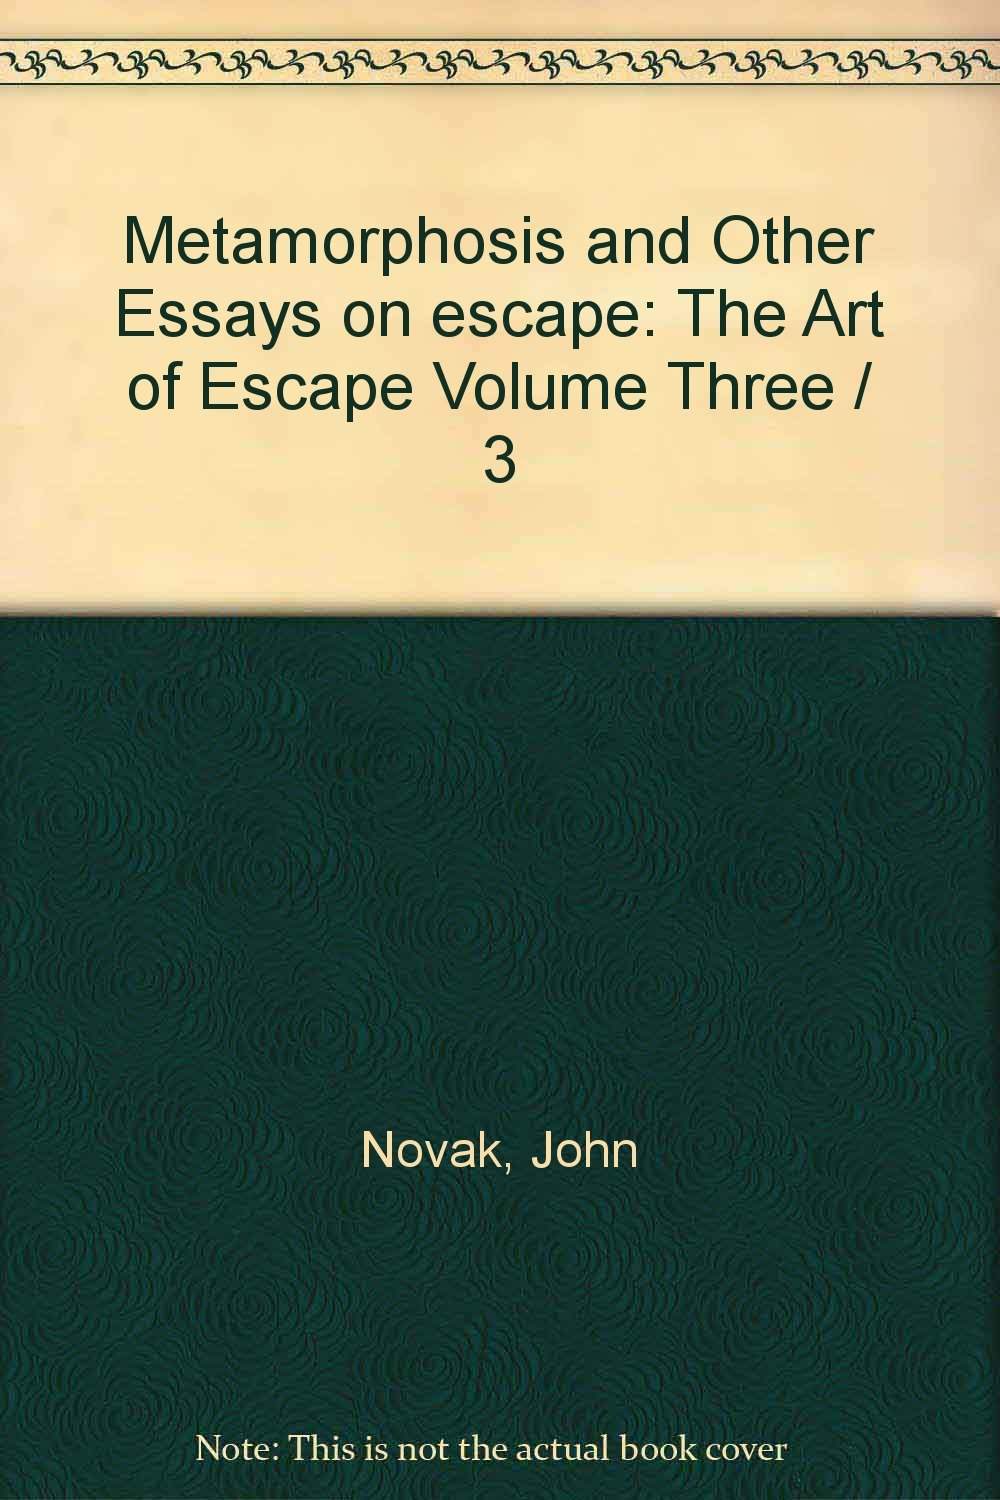 Essay On My Mother In English Metamorphosis And Other Essays On Escape The Art Of Escape Volume Three    John Novak Bw Illustrations  Amazoncom Books Essay About Healthy Lifestyle also Sample Of Research Essay Paper Metamorphosis And Other Essays On Escape The Art Of Escape Volume  Thesis Of A Compare And Contrast Essay